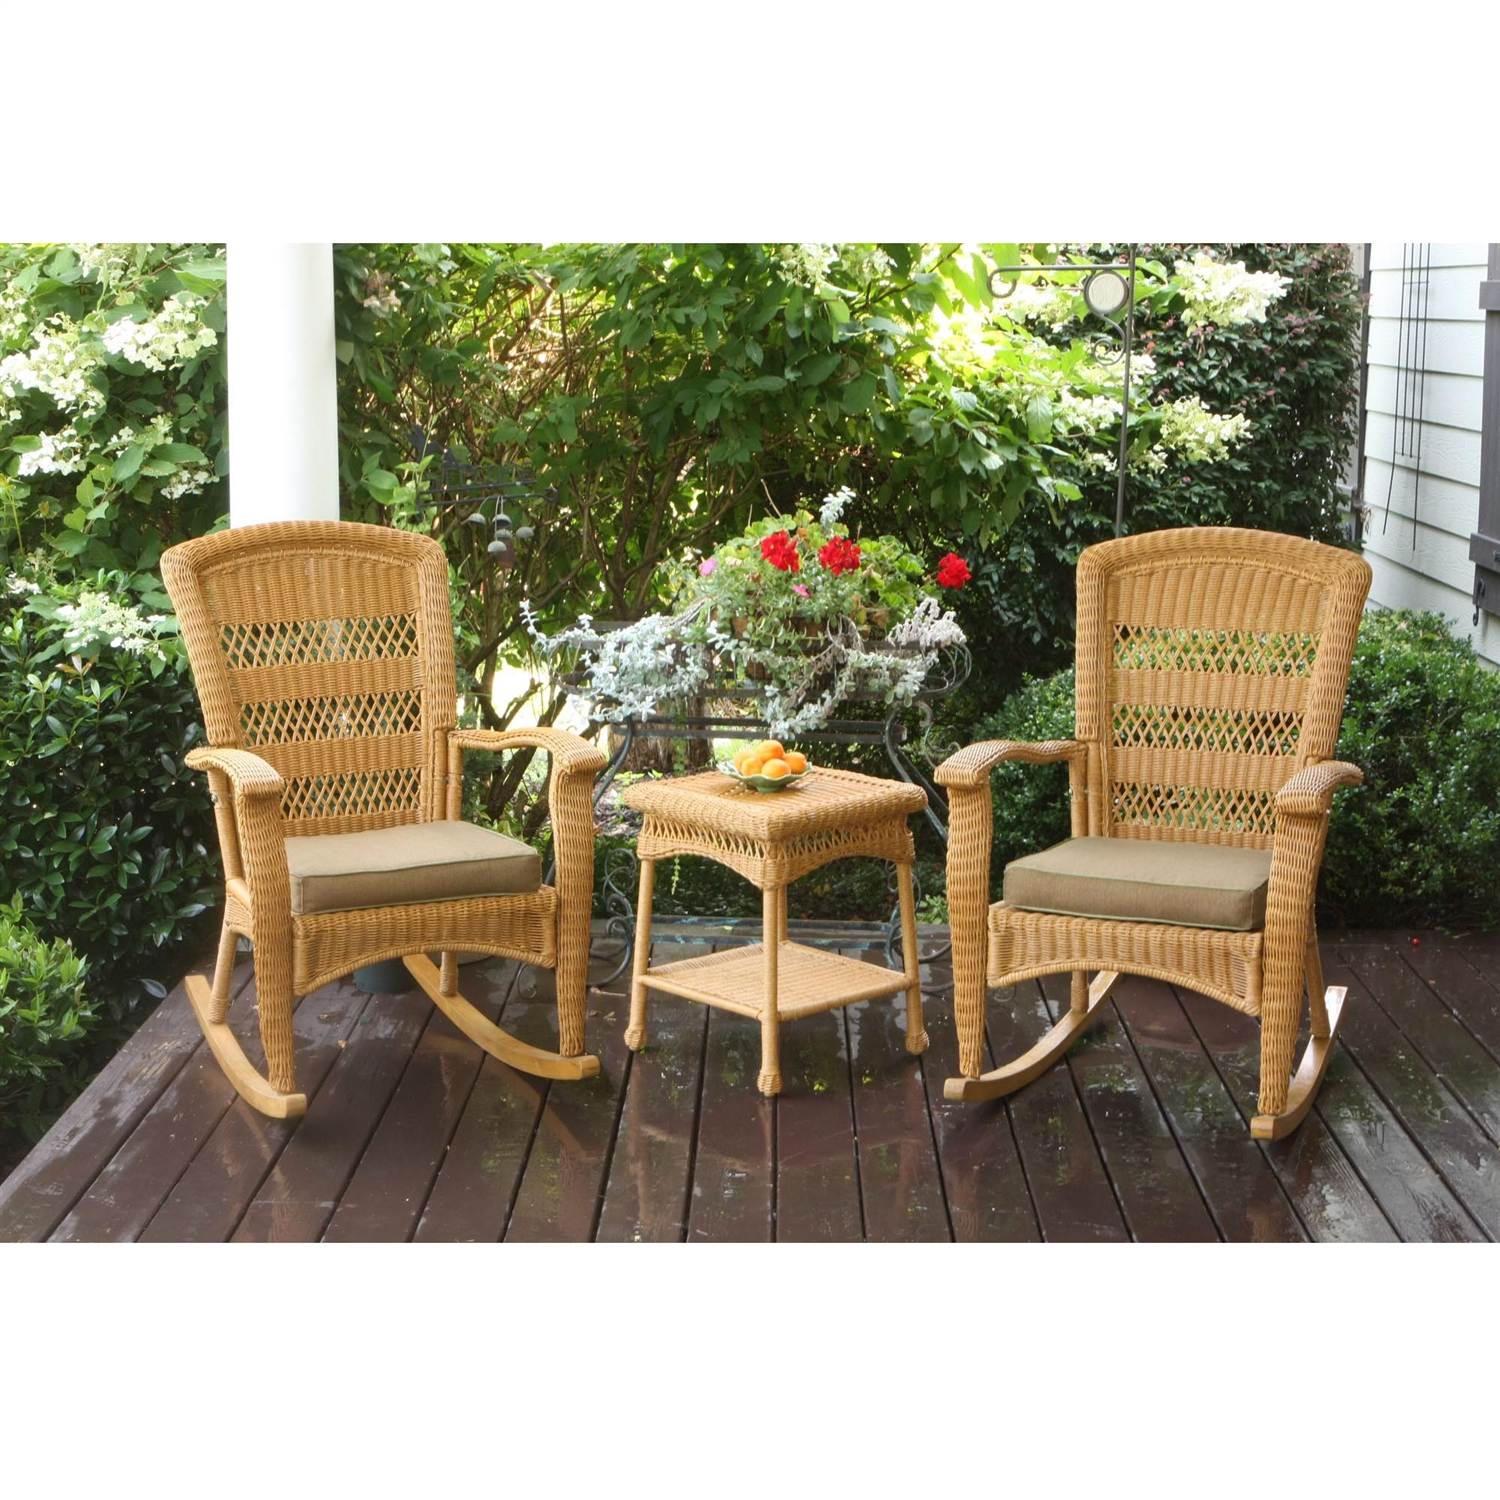 Image of: Outdoor Wicker Rocking Chairs Image